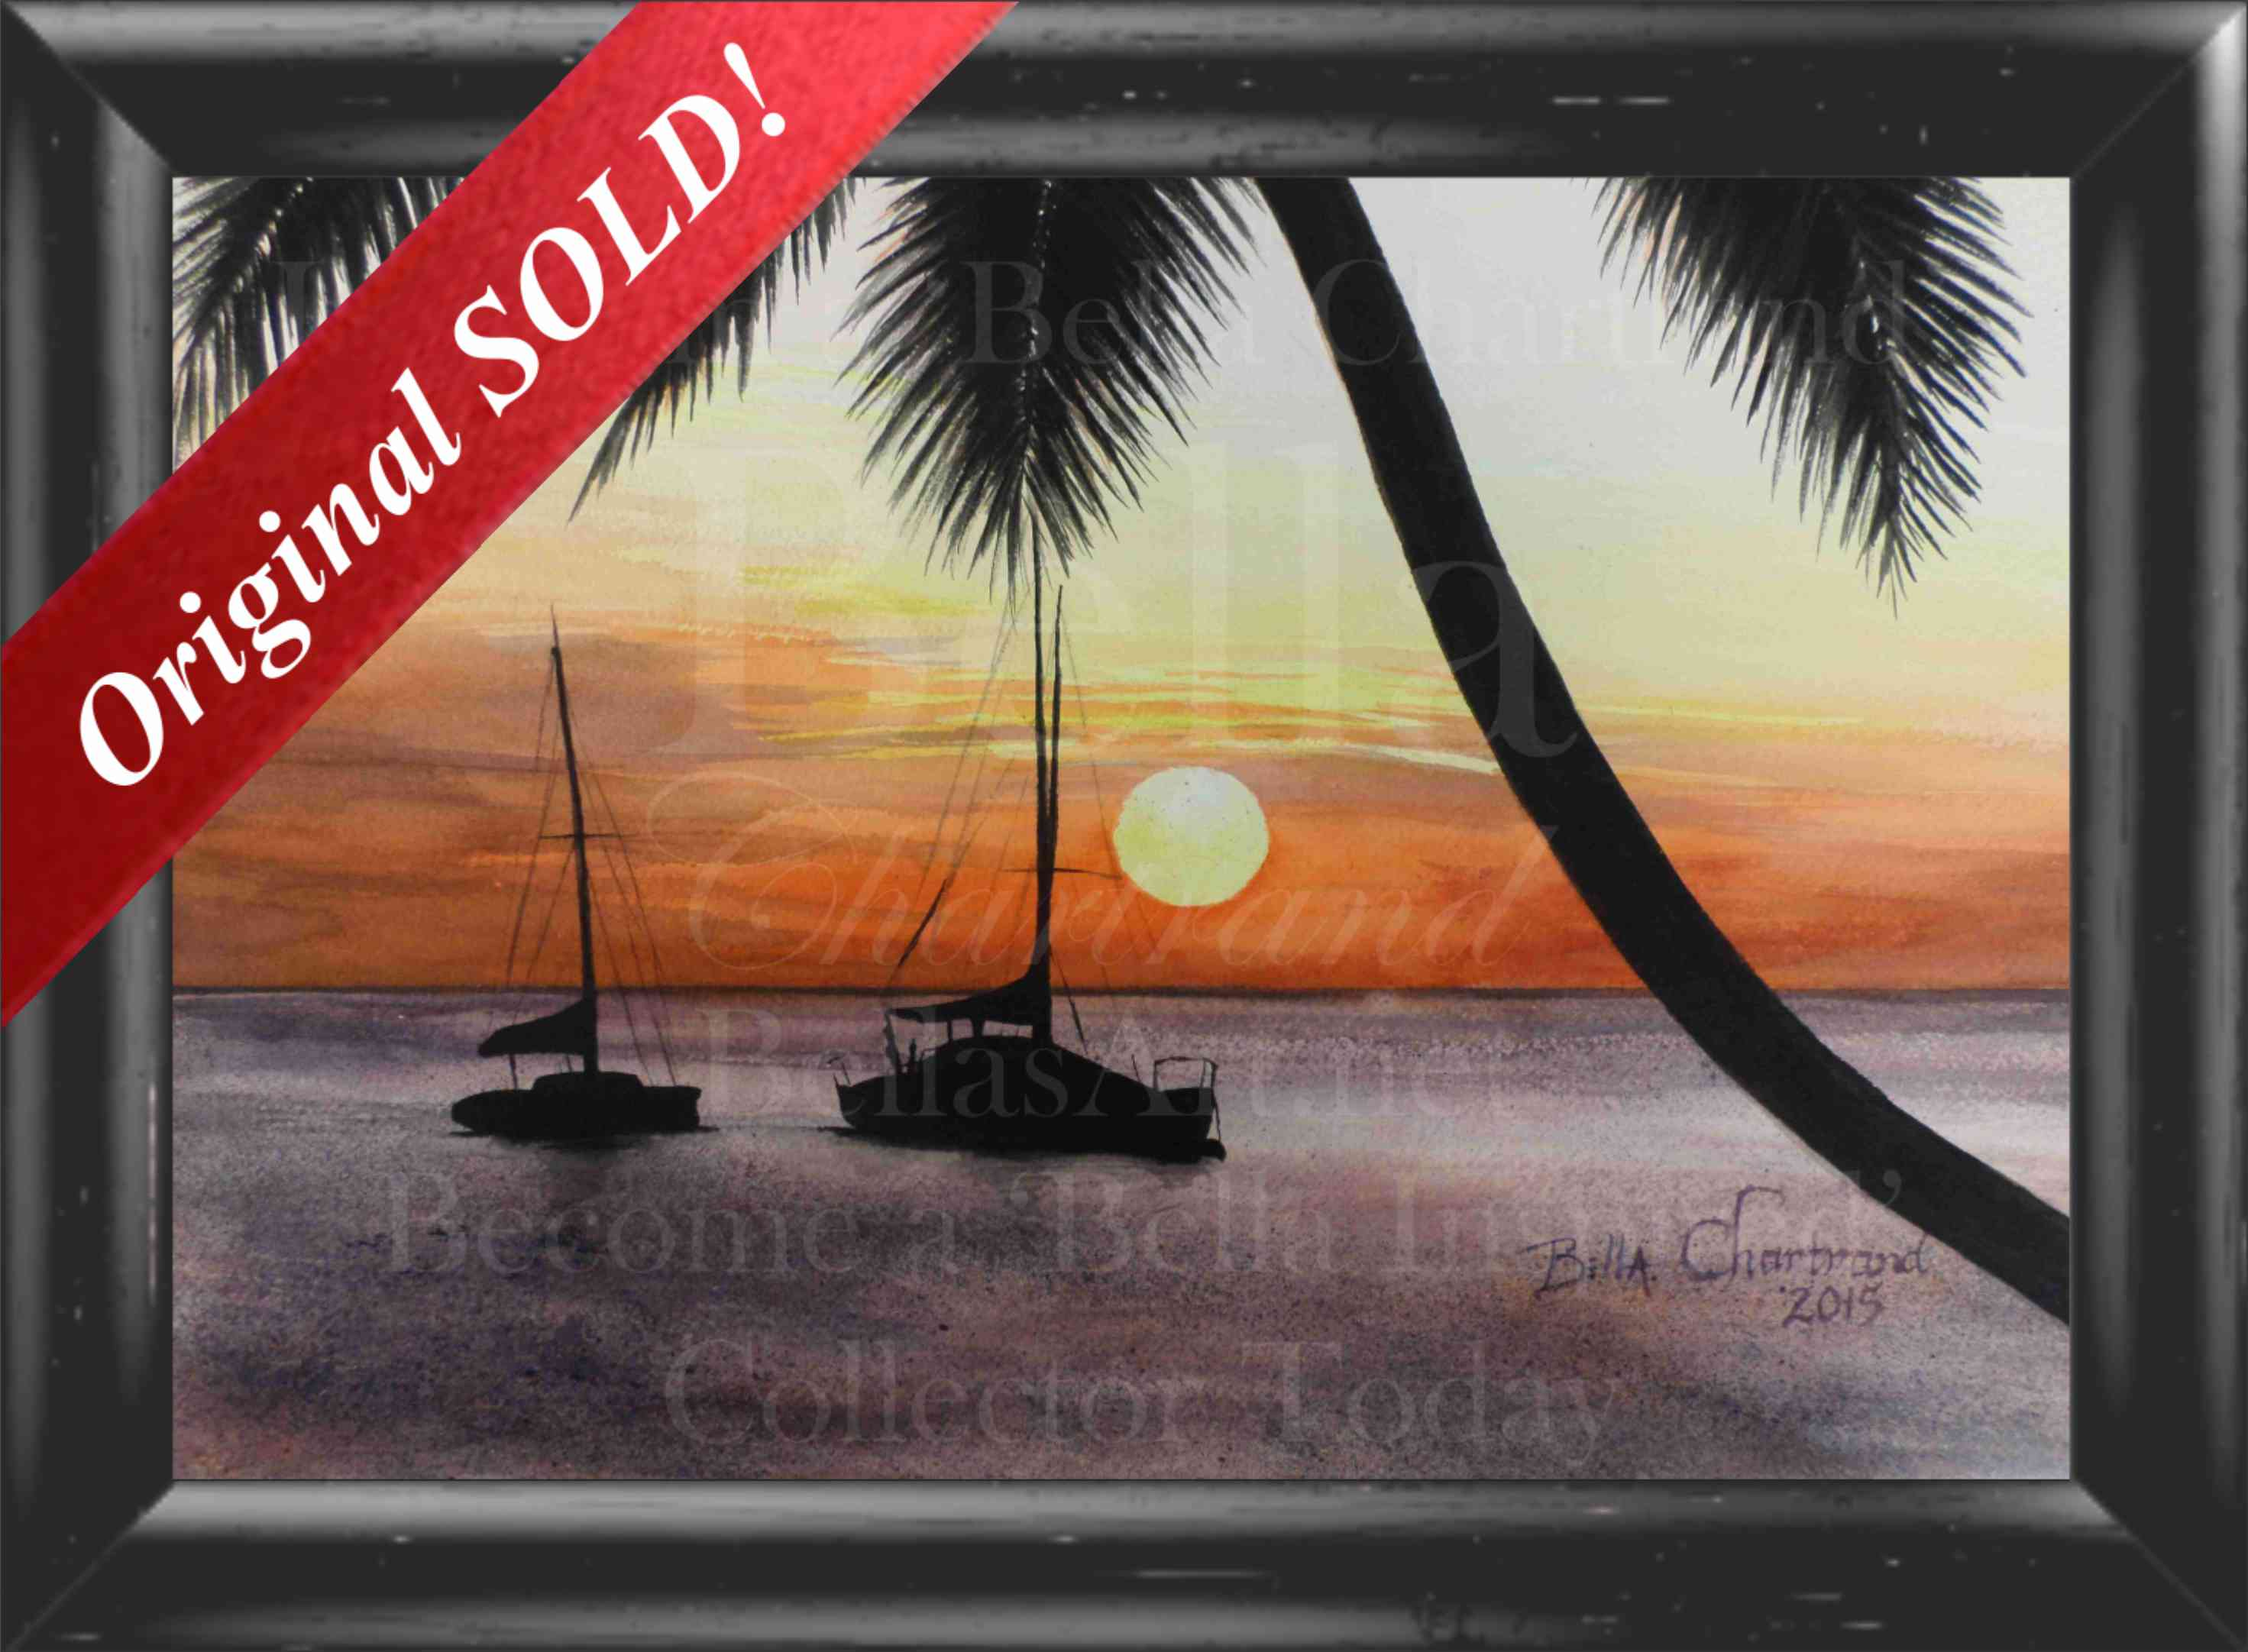 """Sunset View"" from Bella Inspired Seascape Collection by Bella Chartrand from Utopia USA"